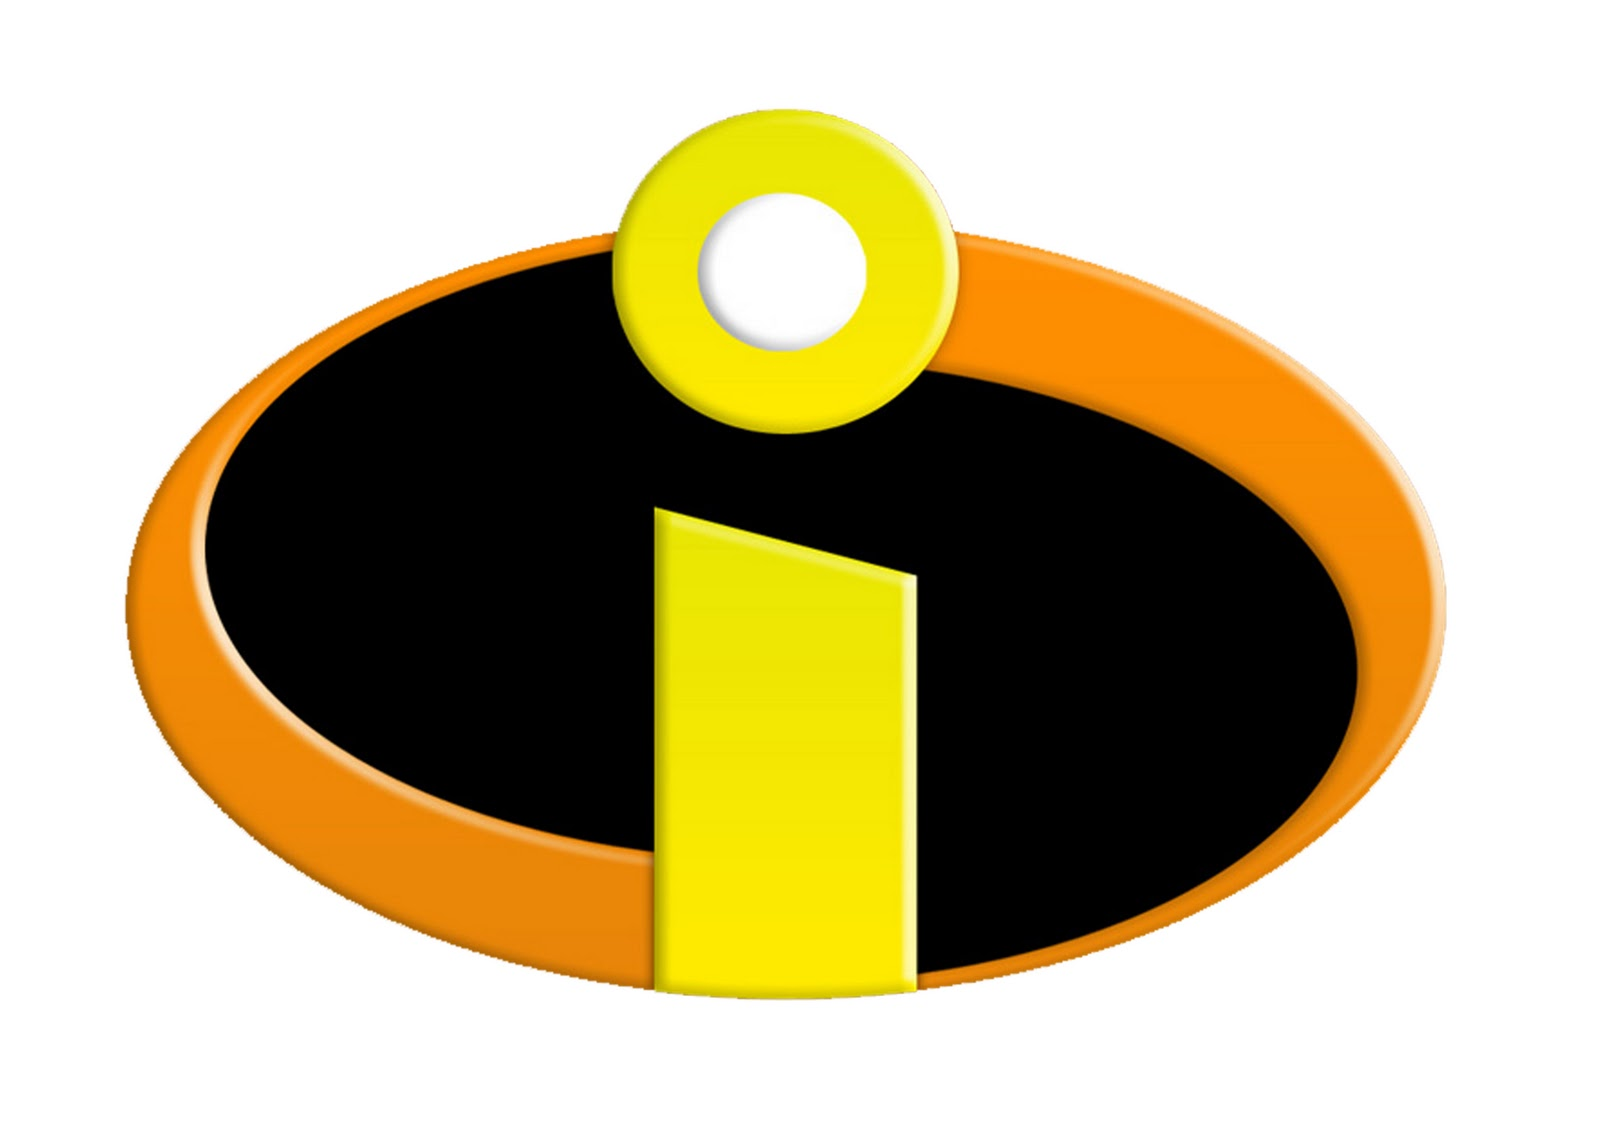 picture about Incredibles Logo Printable named The Incredibles Logopedia FANDOM driven by way of Wikia